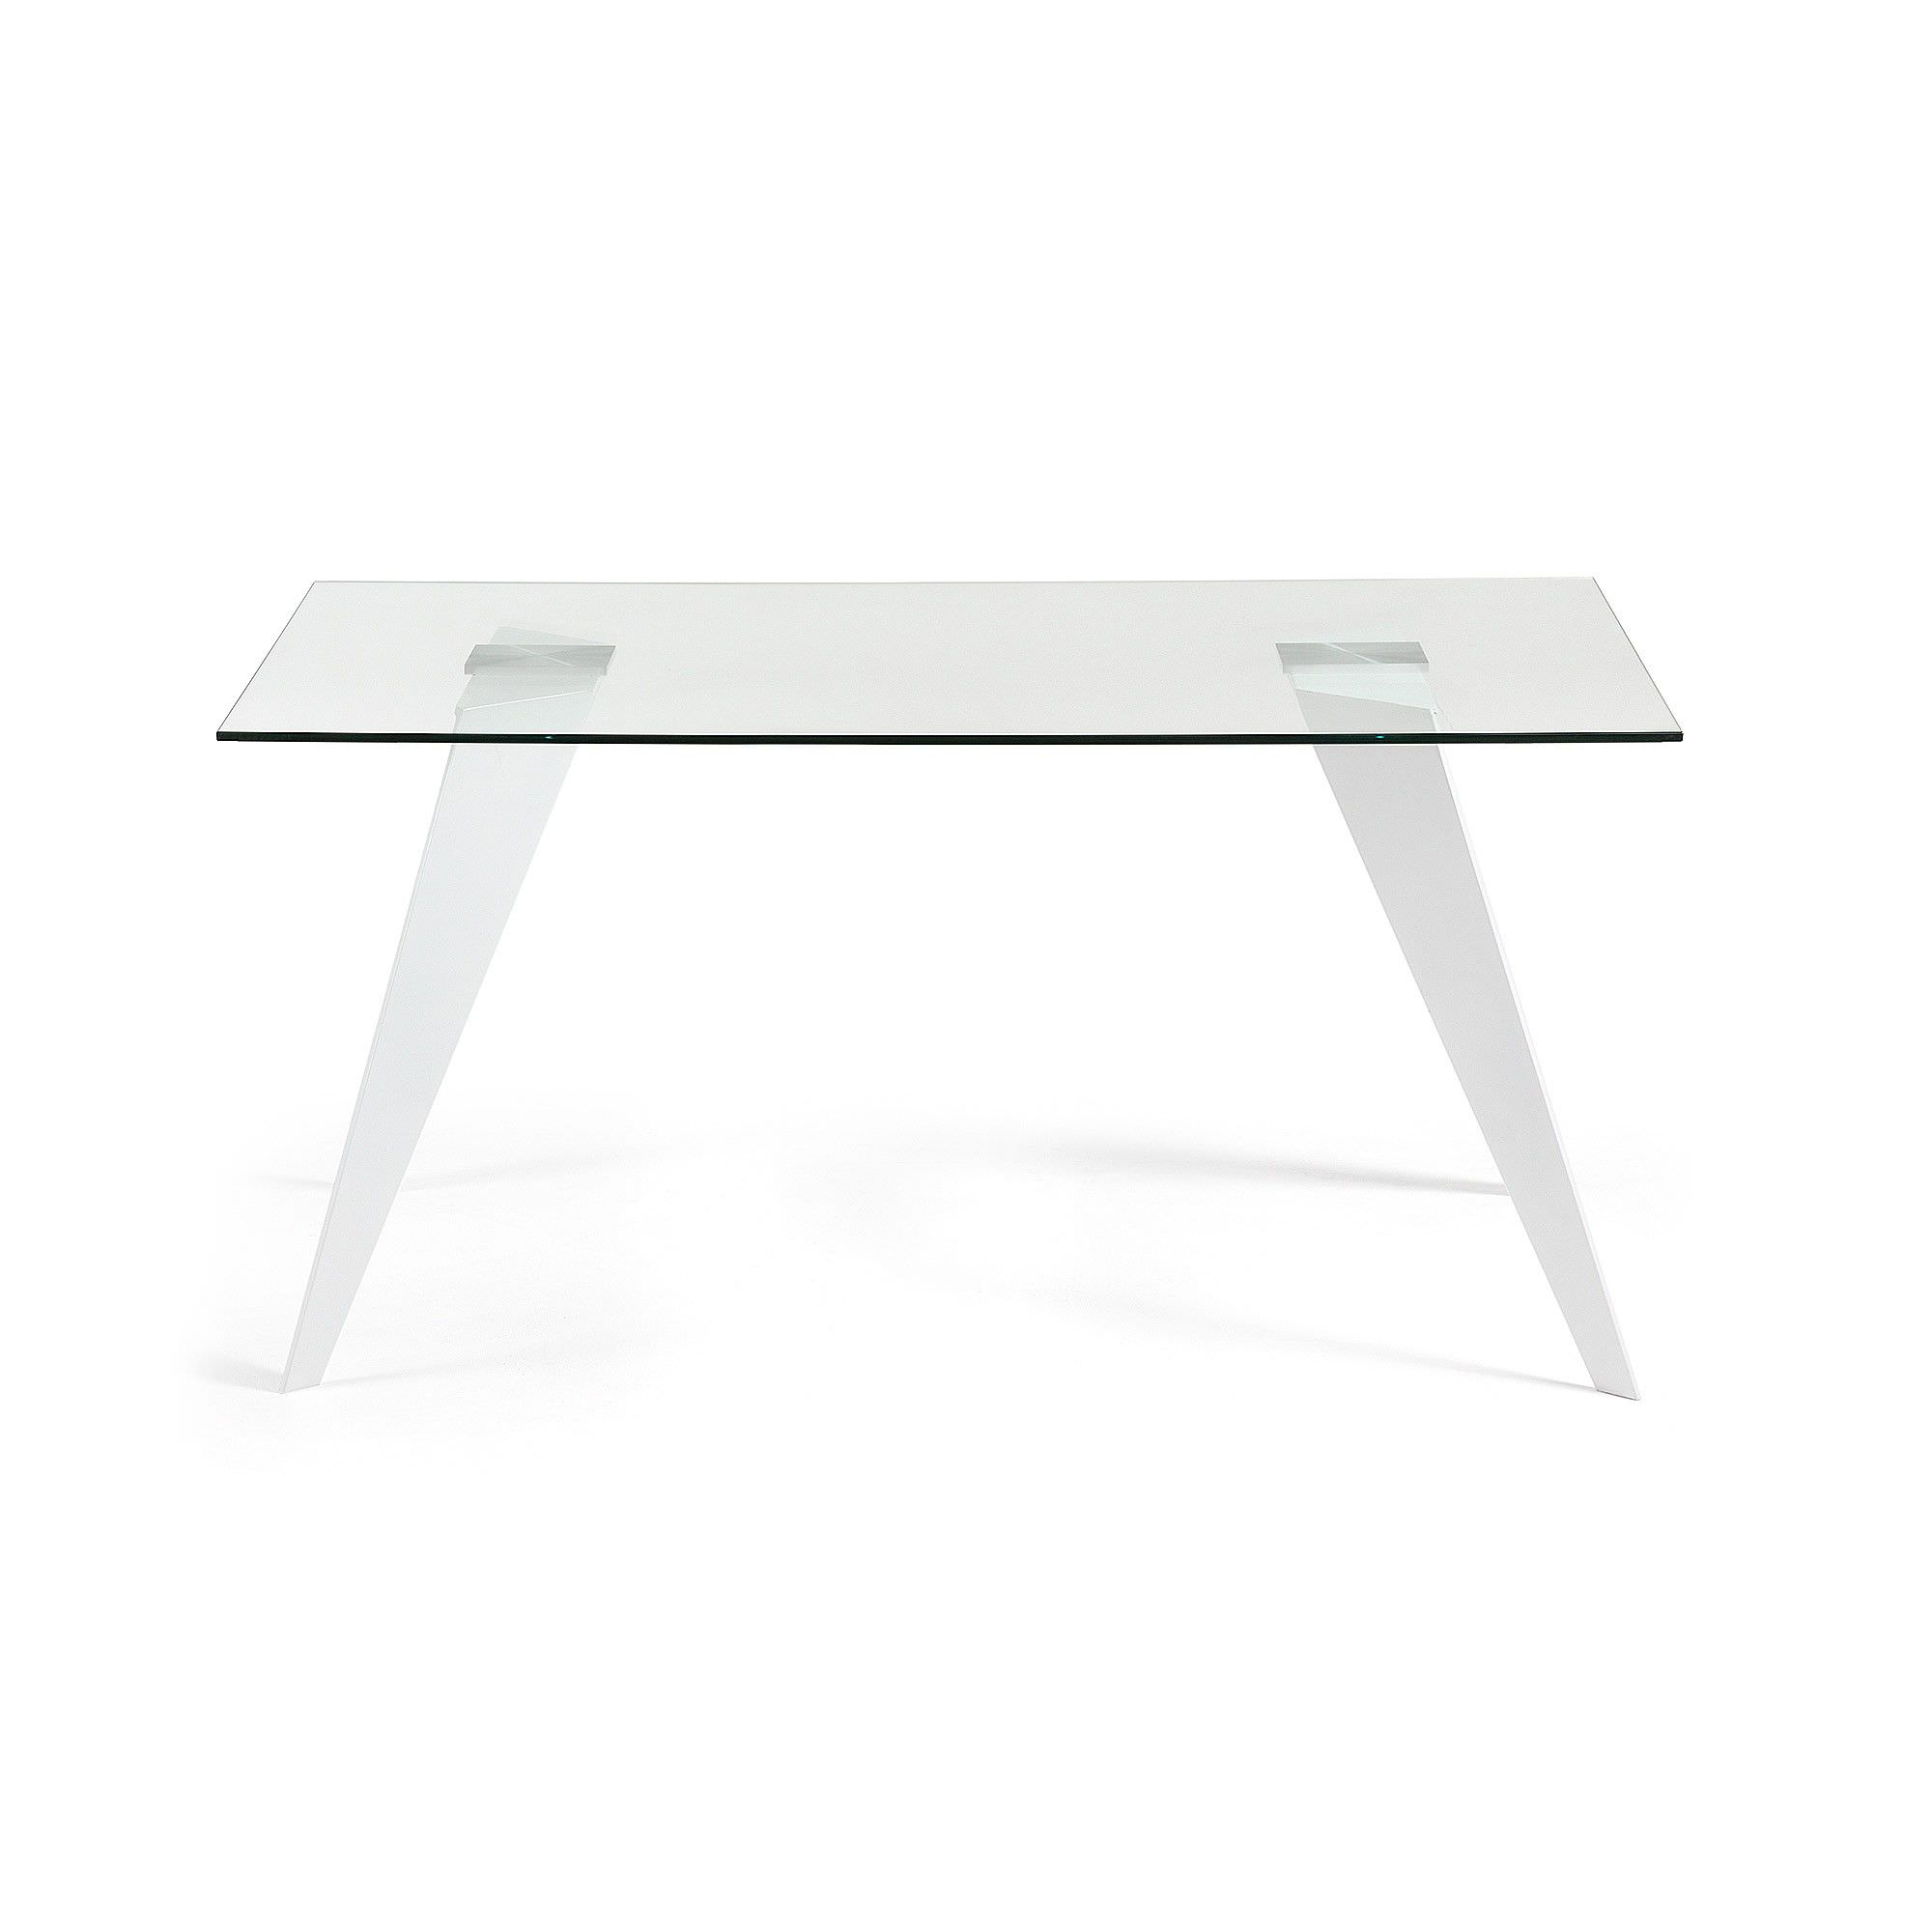 Neville Tempered Glass & Steel Dining Table, 160cm, Clear / White